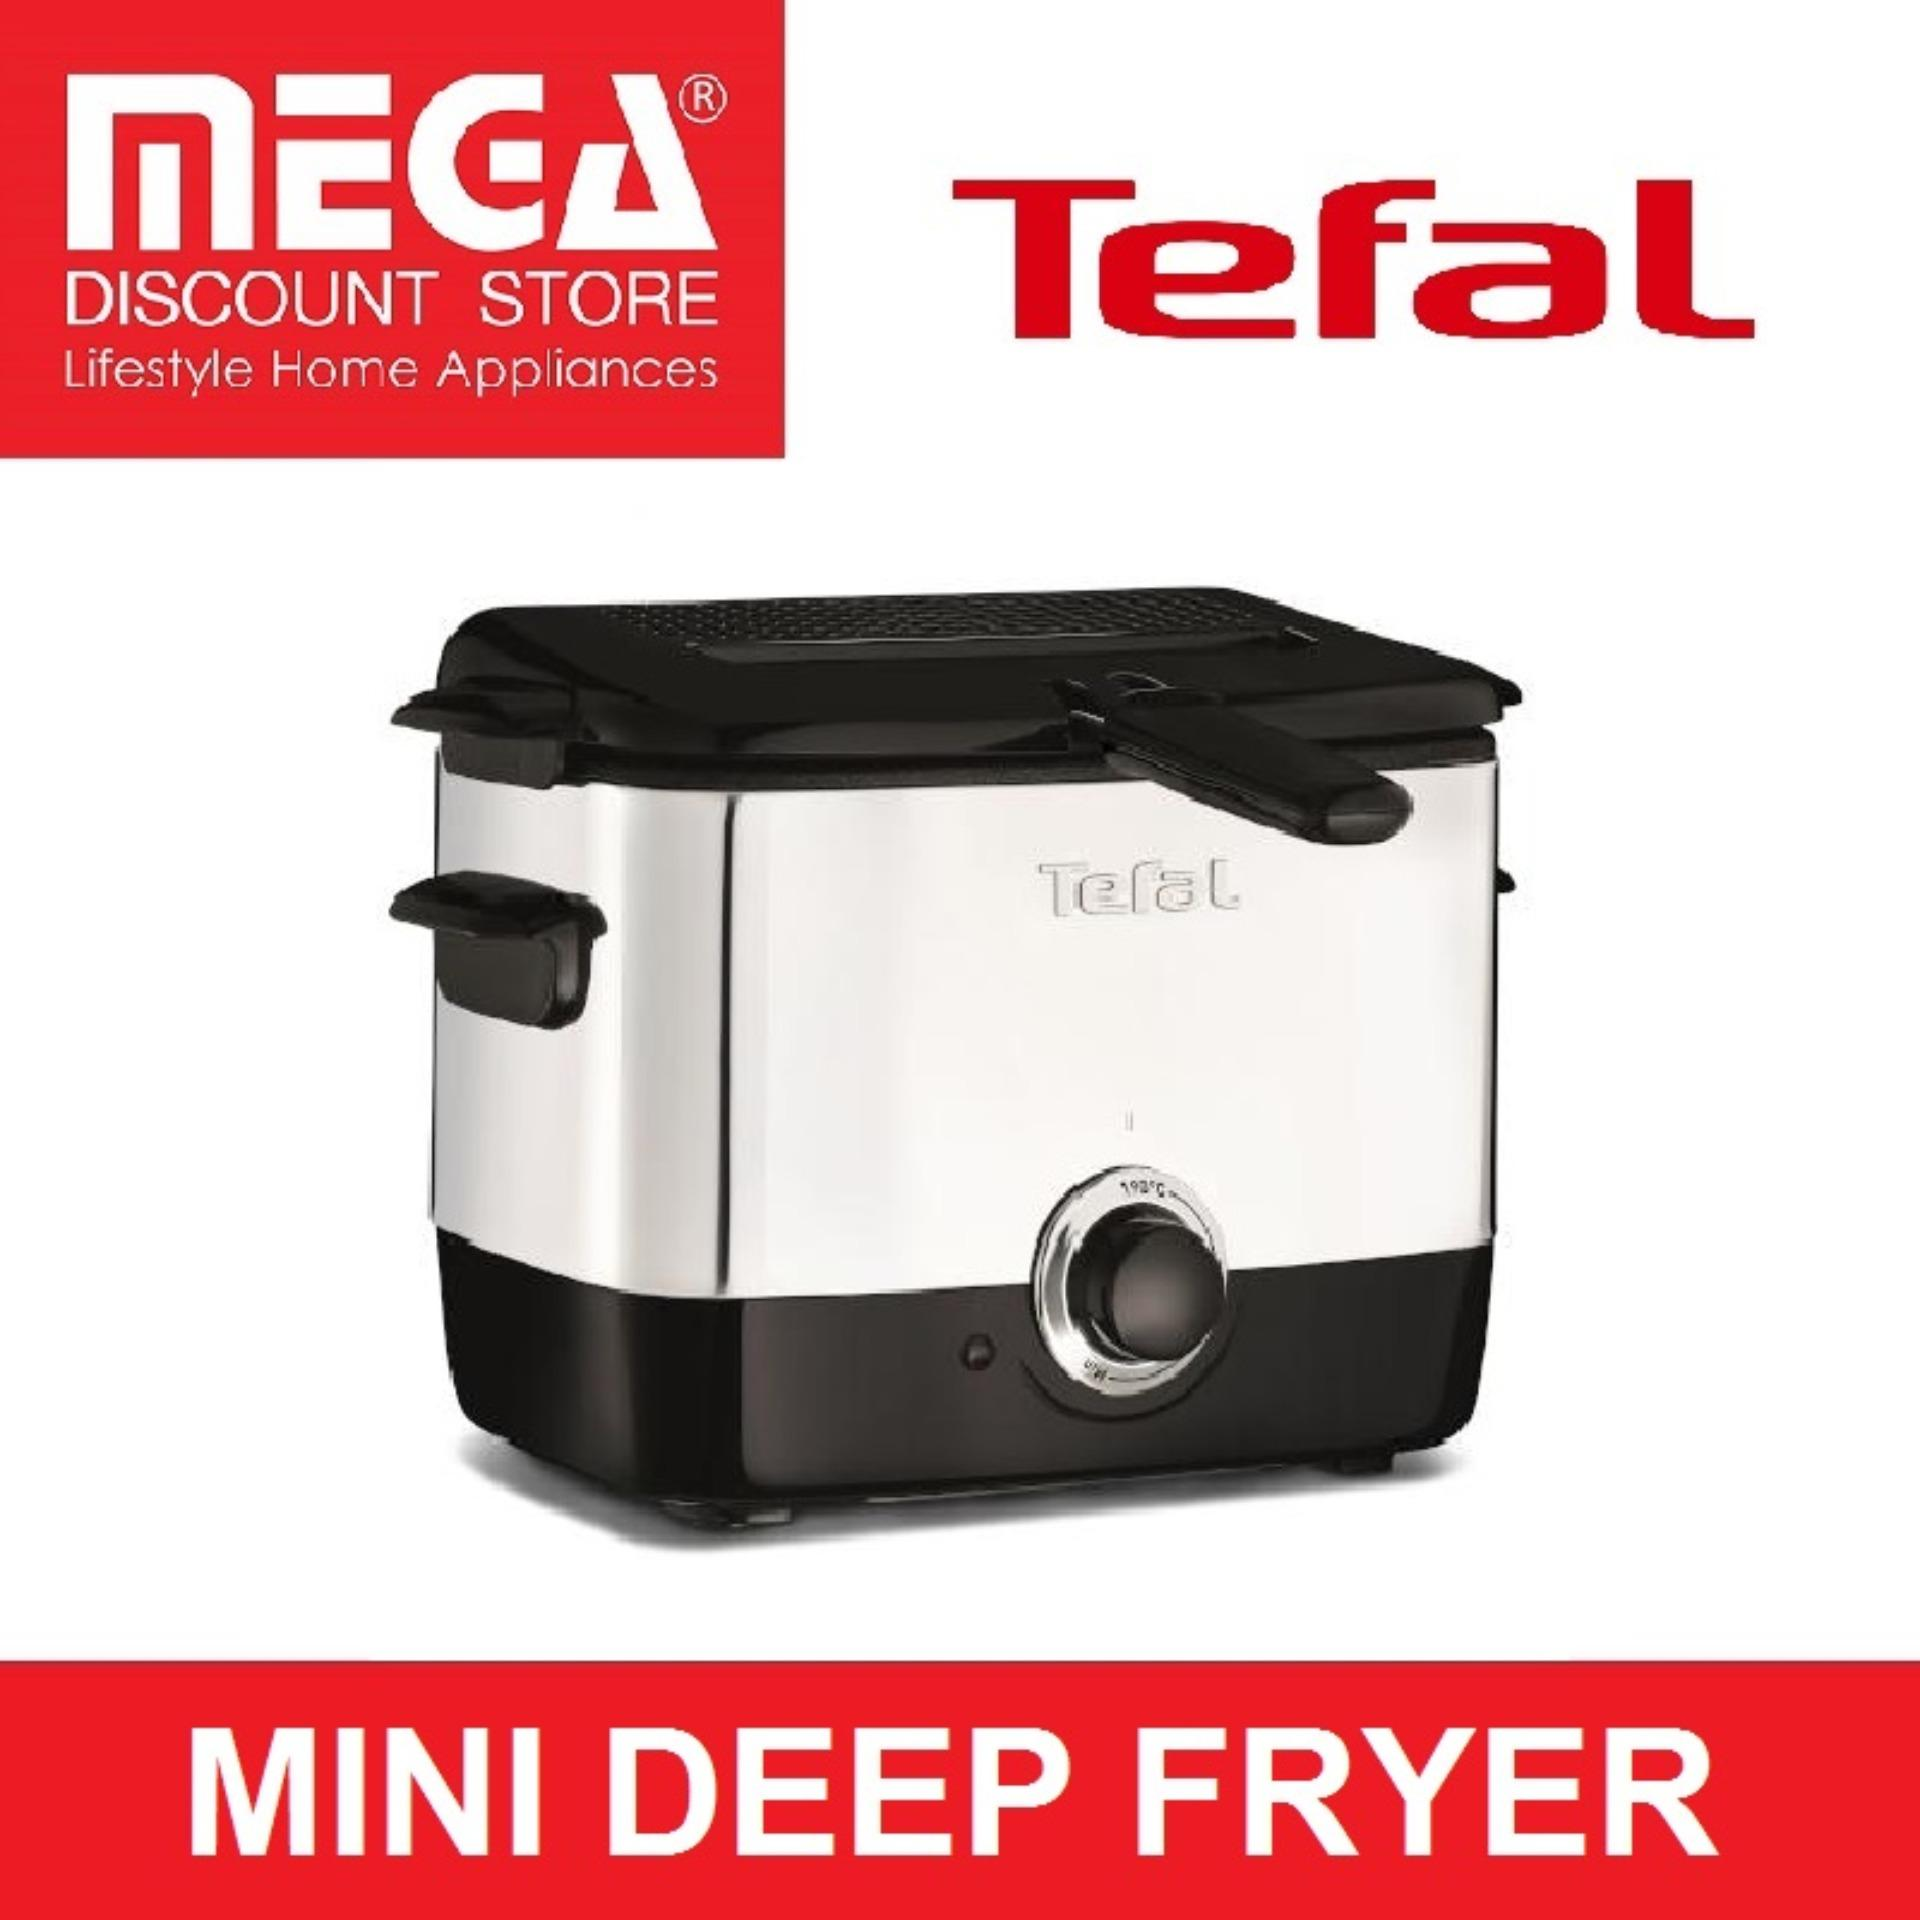 Tefal Ff2200 1l Mini Deep Fryer By Mega Discount Store.